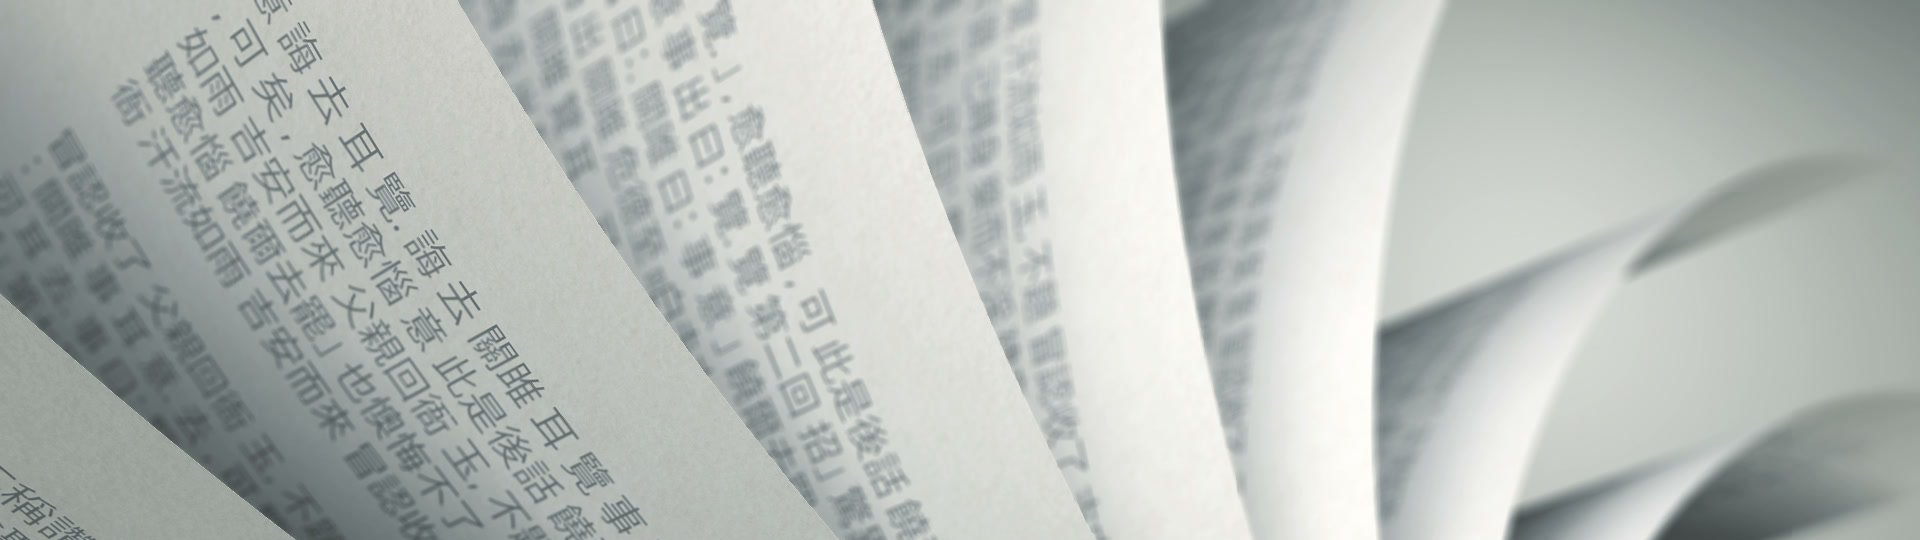 Turning Pages (Loop) Chinese Book | Book pages with random Chinese words / sentences. Seamless Loop, depth of field.  - ID:21654